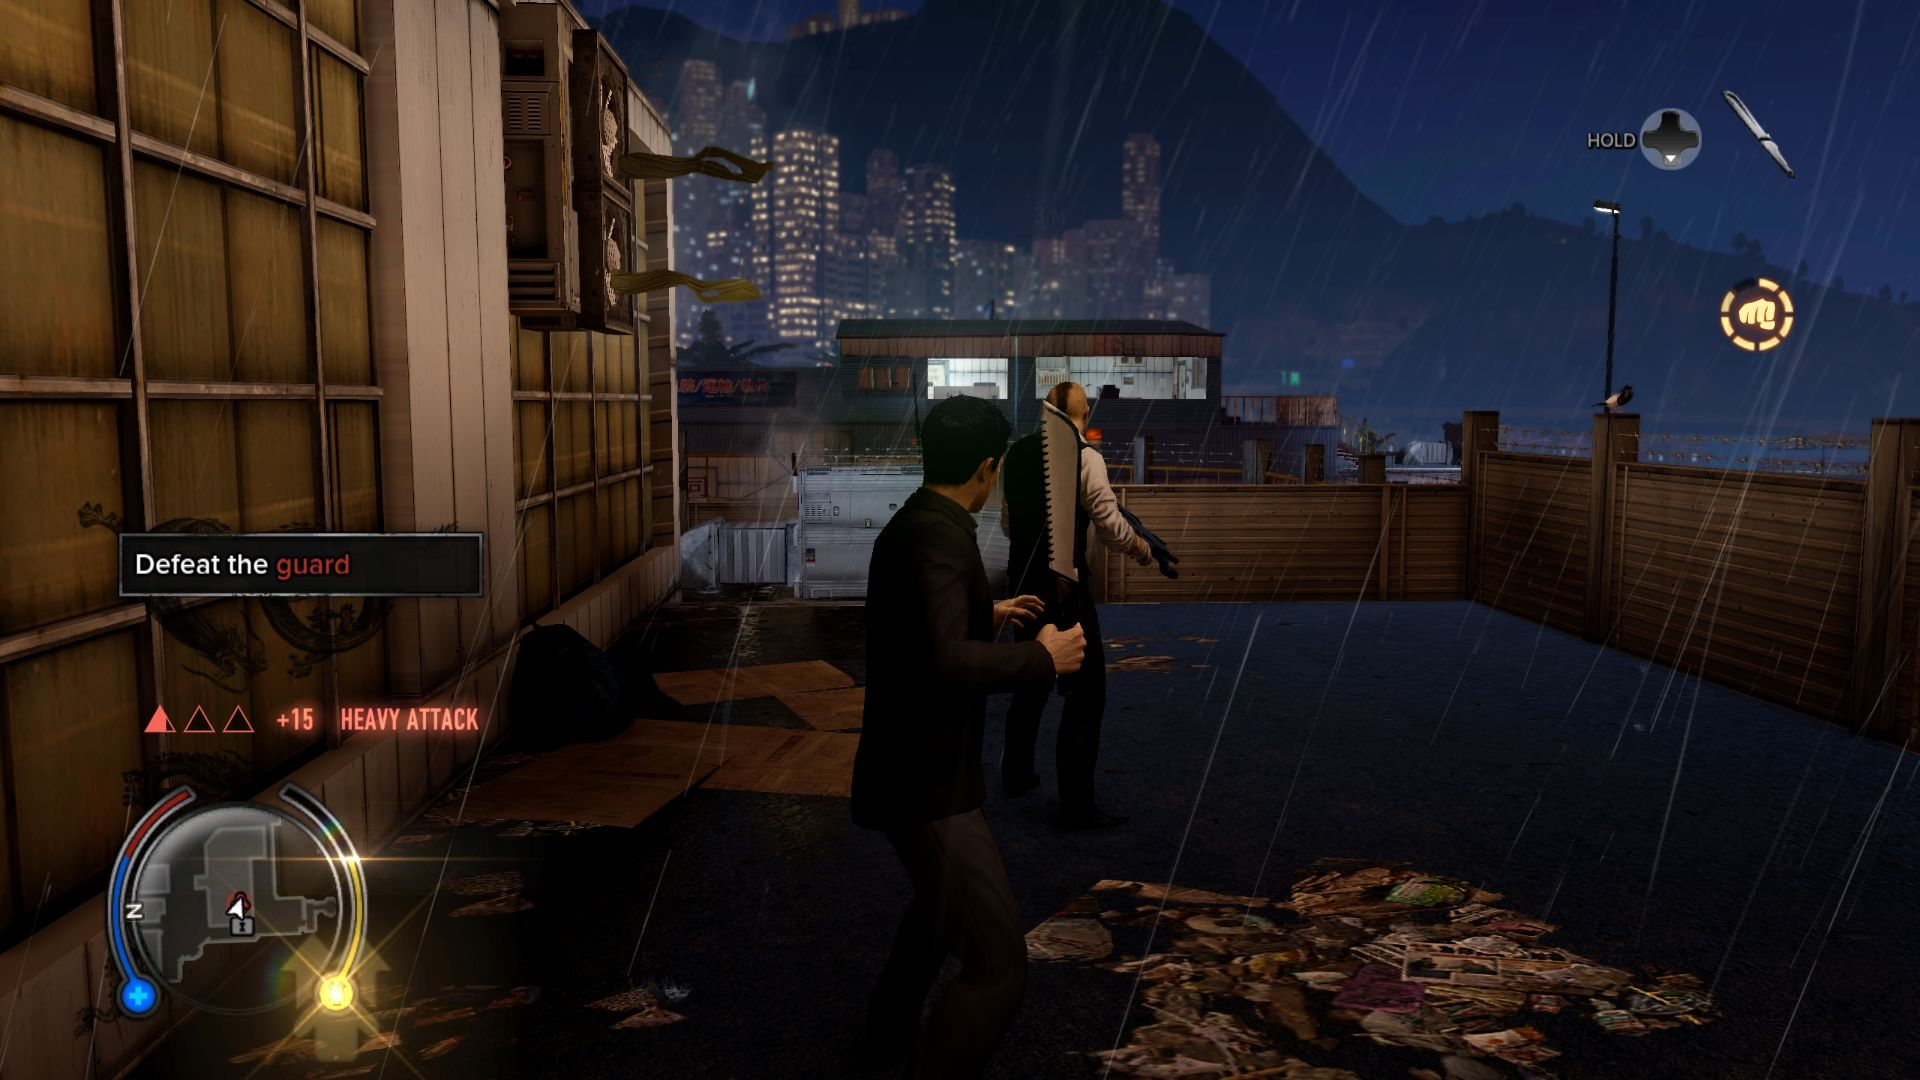 Sleeping Dogs Windows If you encounter an armed enemy, take the weapon. Without it, you won't survive for long.